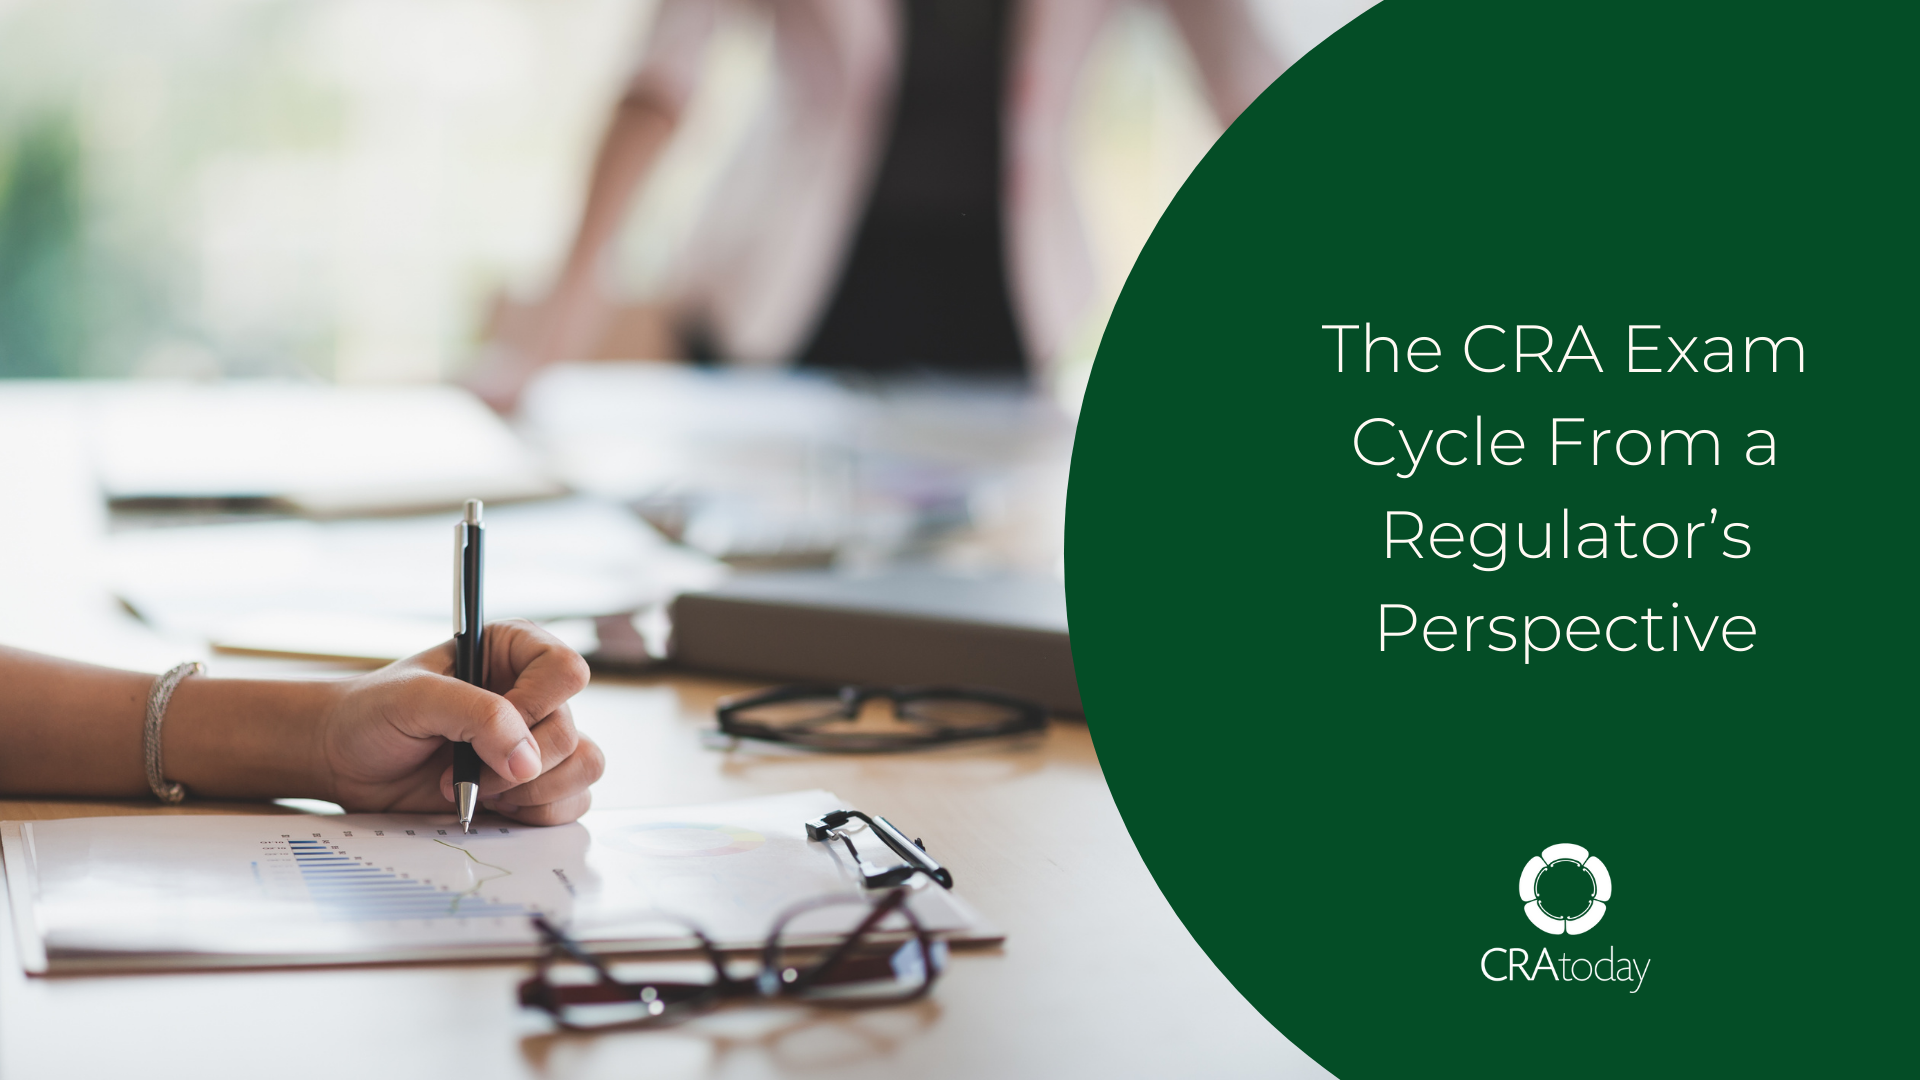 The CRA Exam Cycle From a Regulator's Perspective